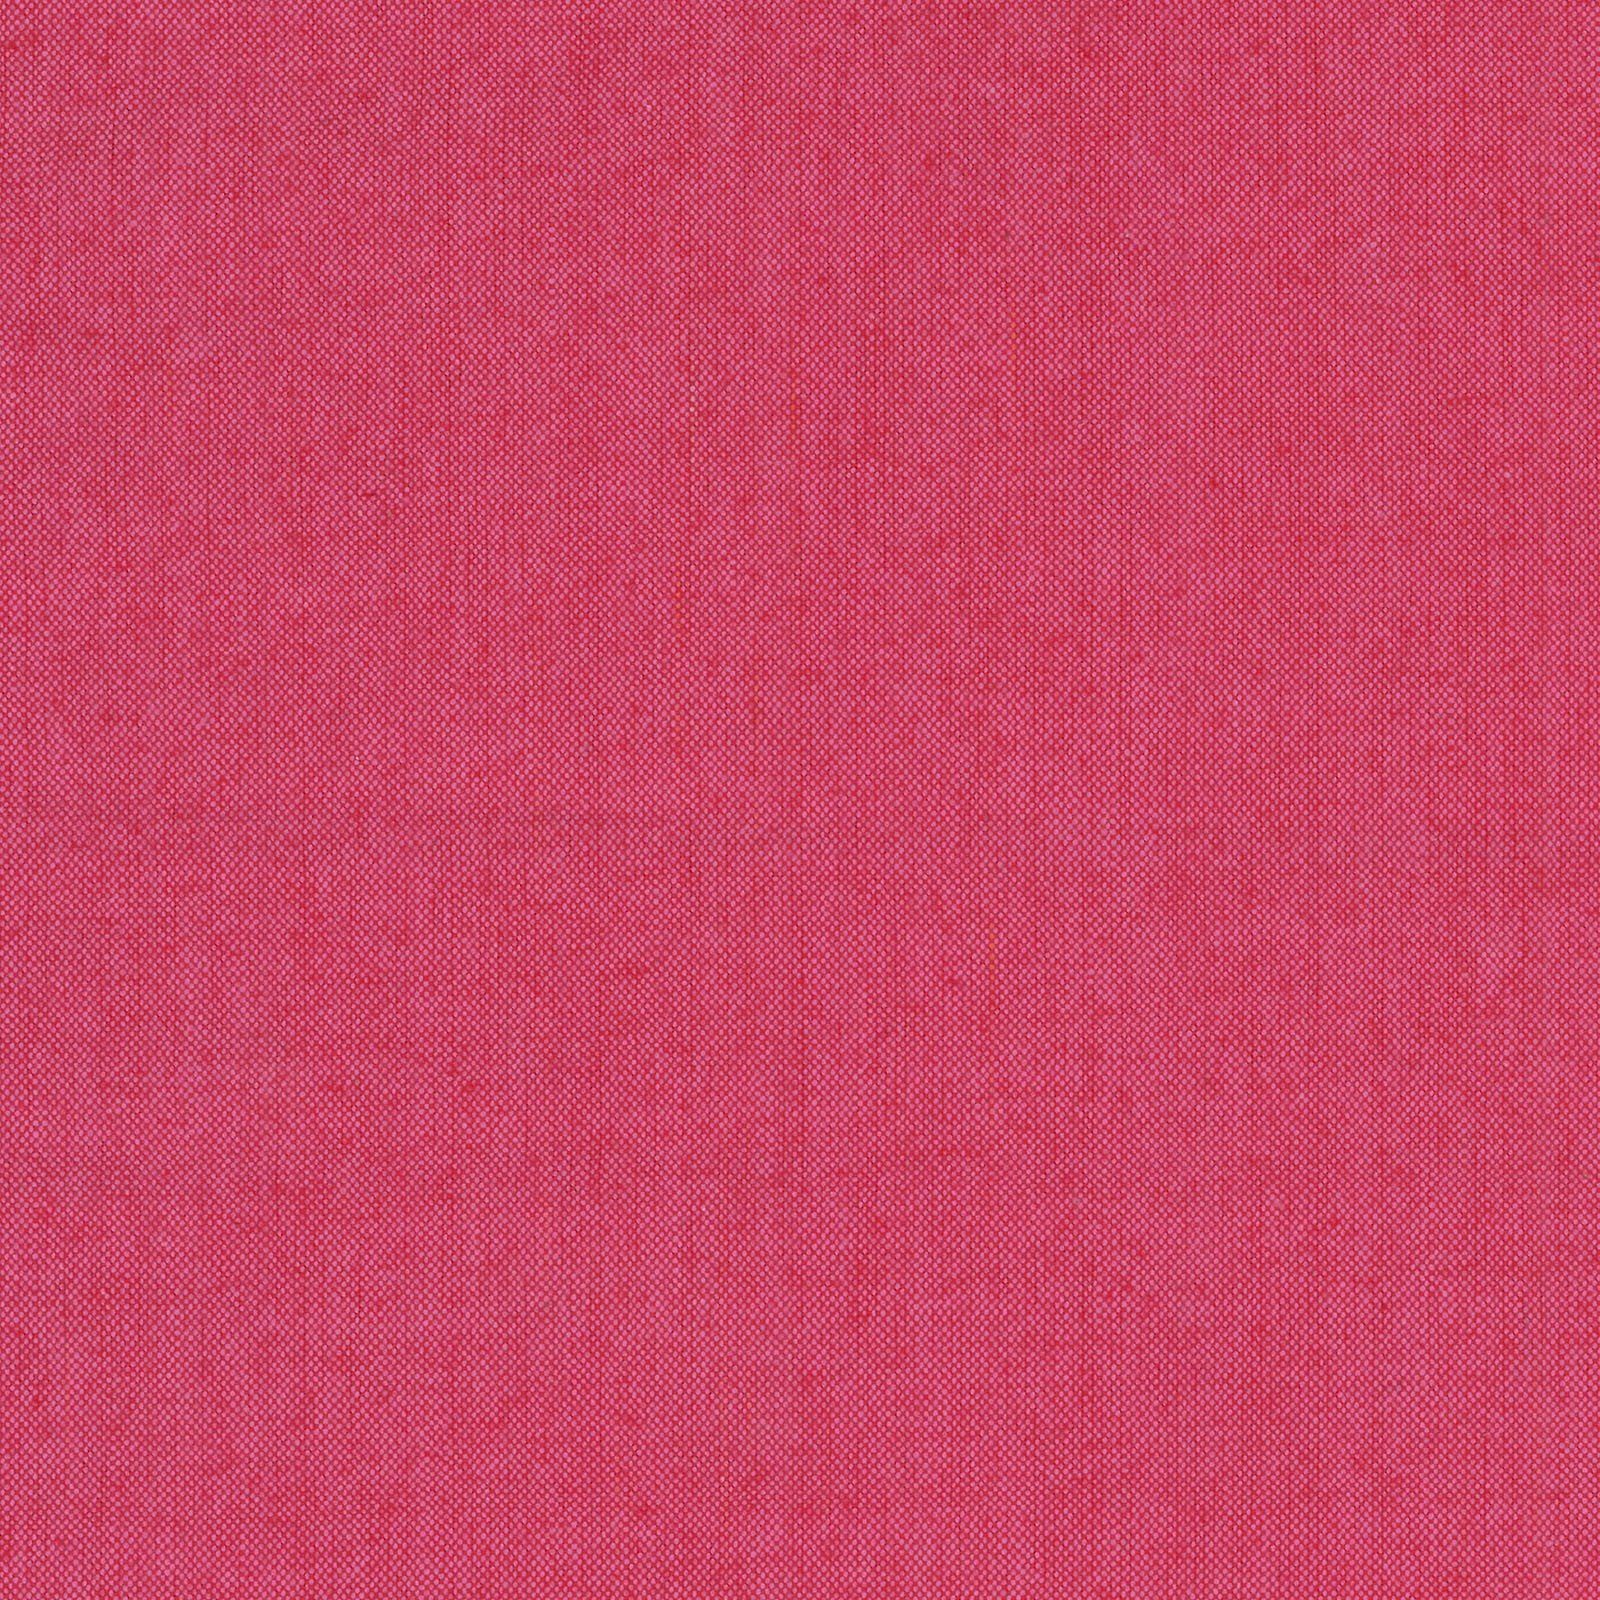 Peppered Cottons - Cinnamon Pink